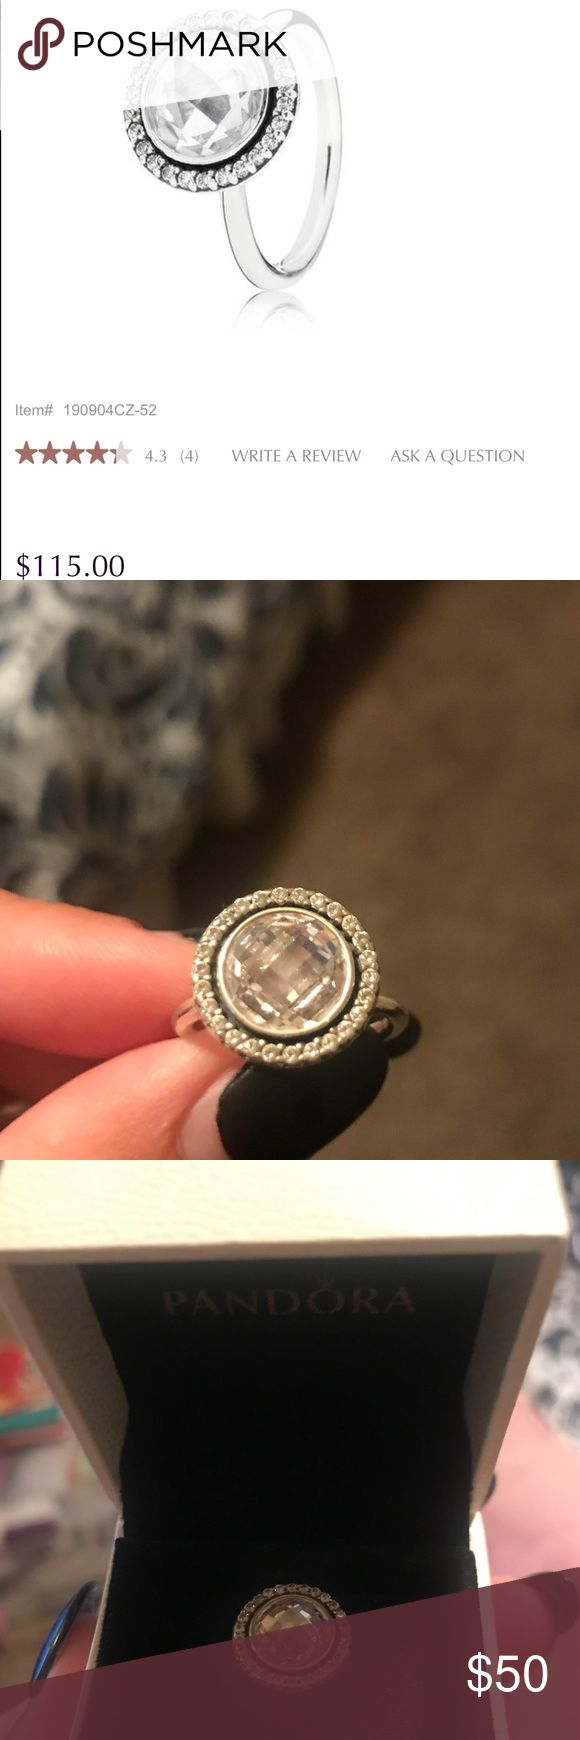 PANDORA Brilliant Legacy Ring Size 6 Pandora ring sizing runs a little big so it could fit a size 7 as well. Very lightly used. Pandora Jewelry Rings